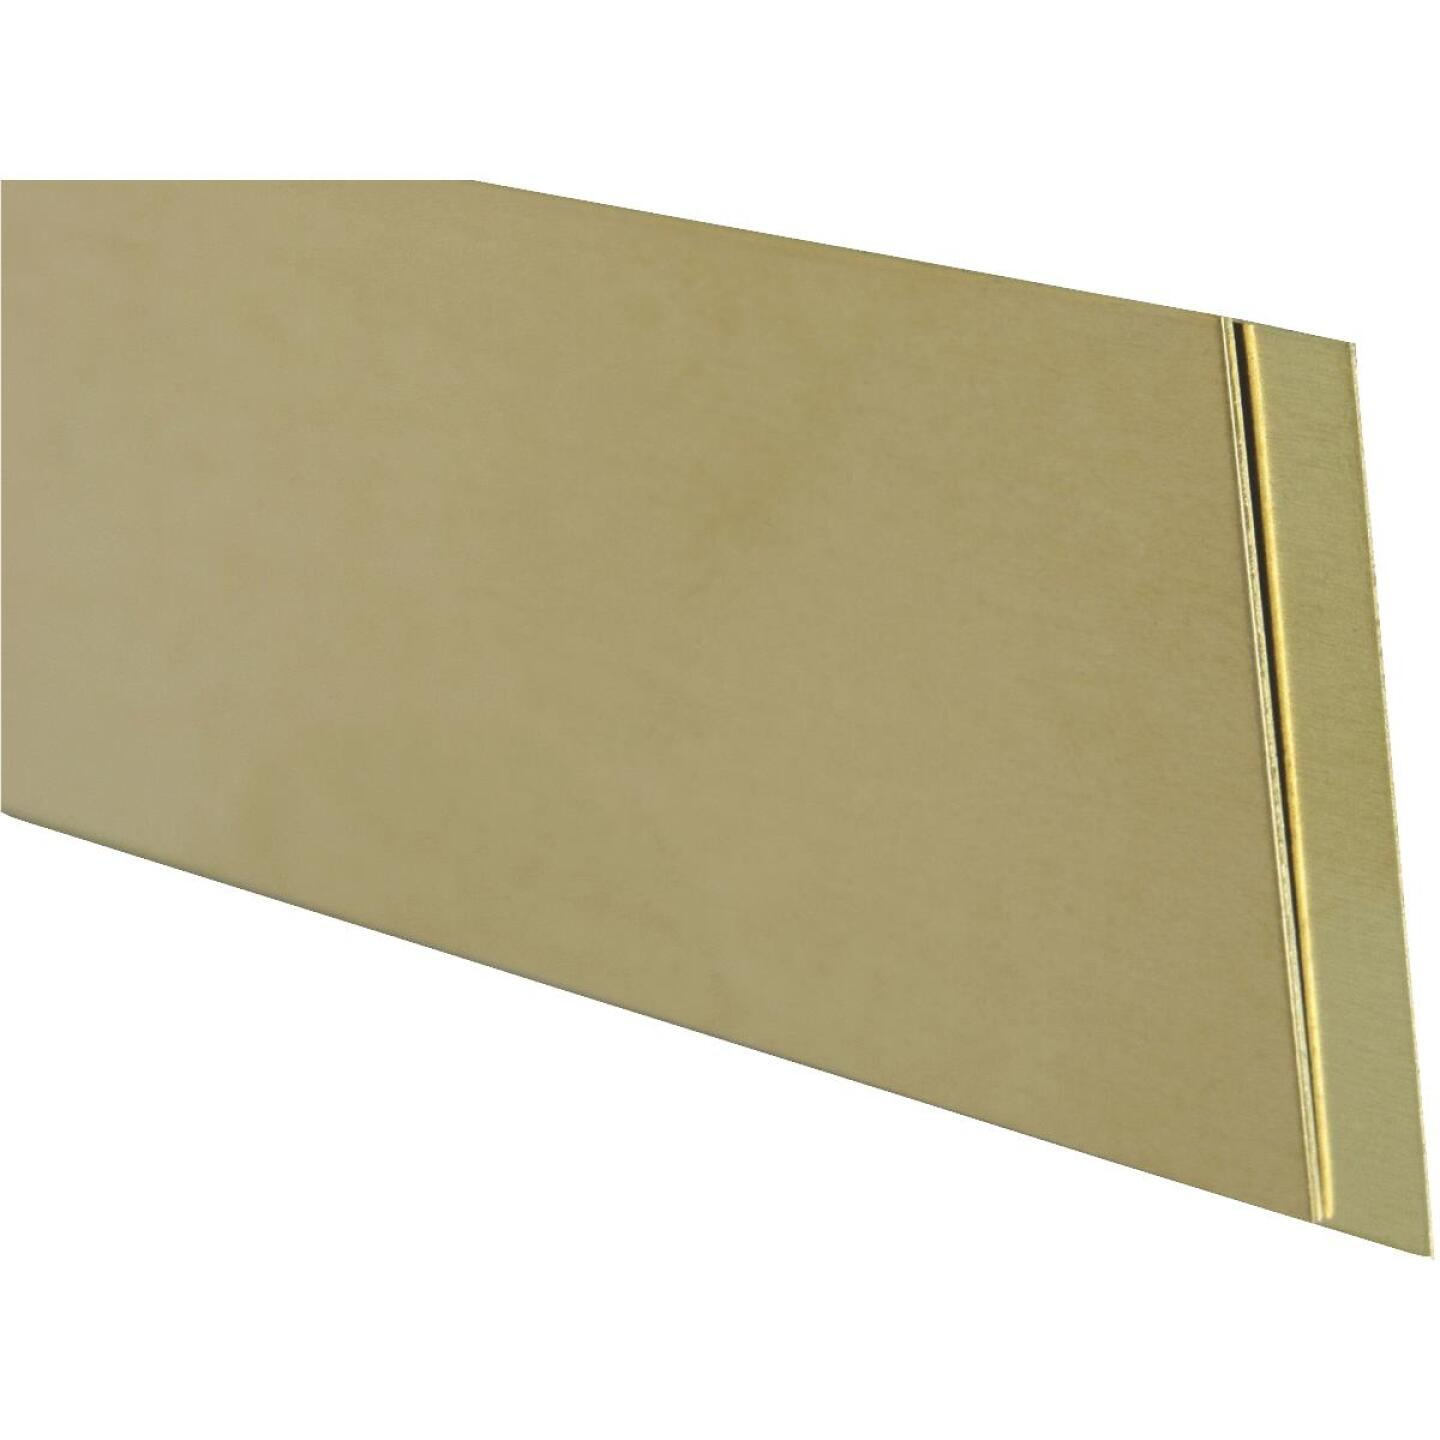 K&S Brass 1/2 In. x 12 In. Strip Stock Image 1